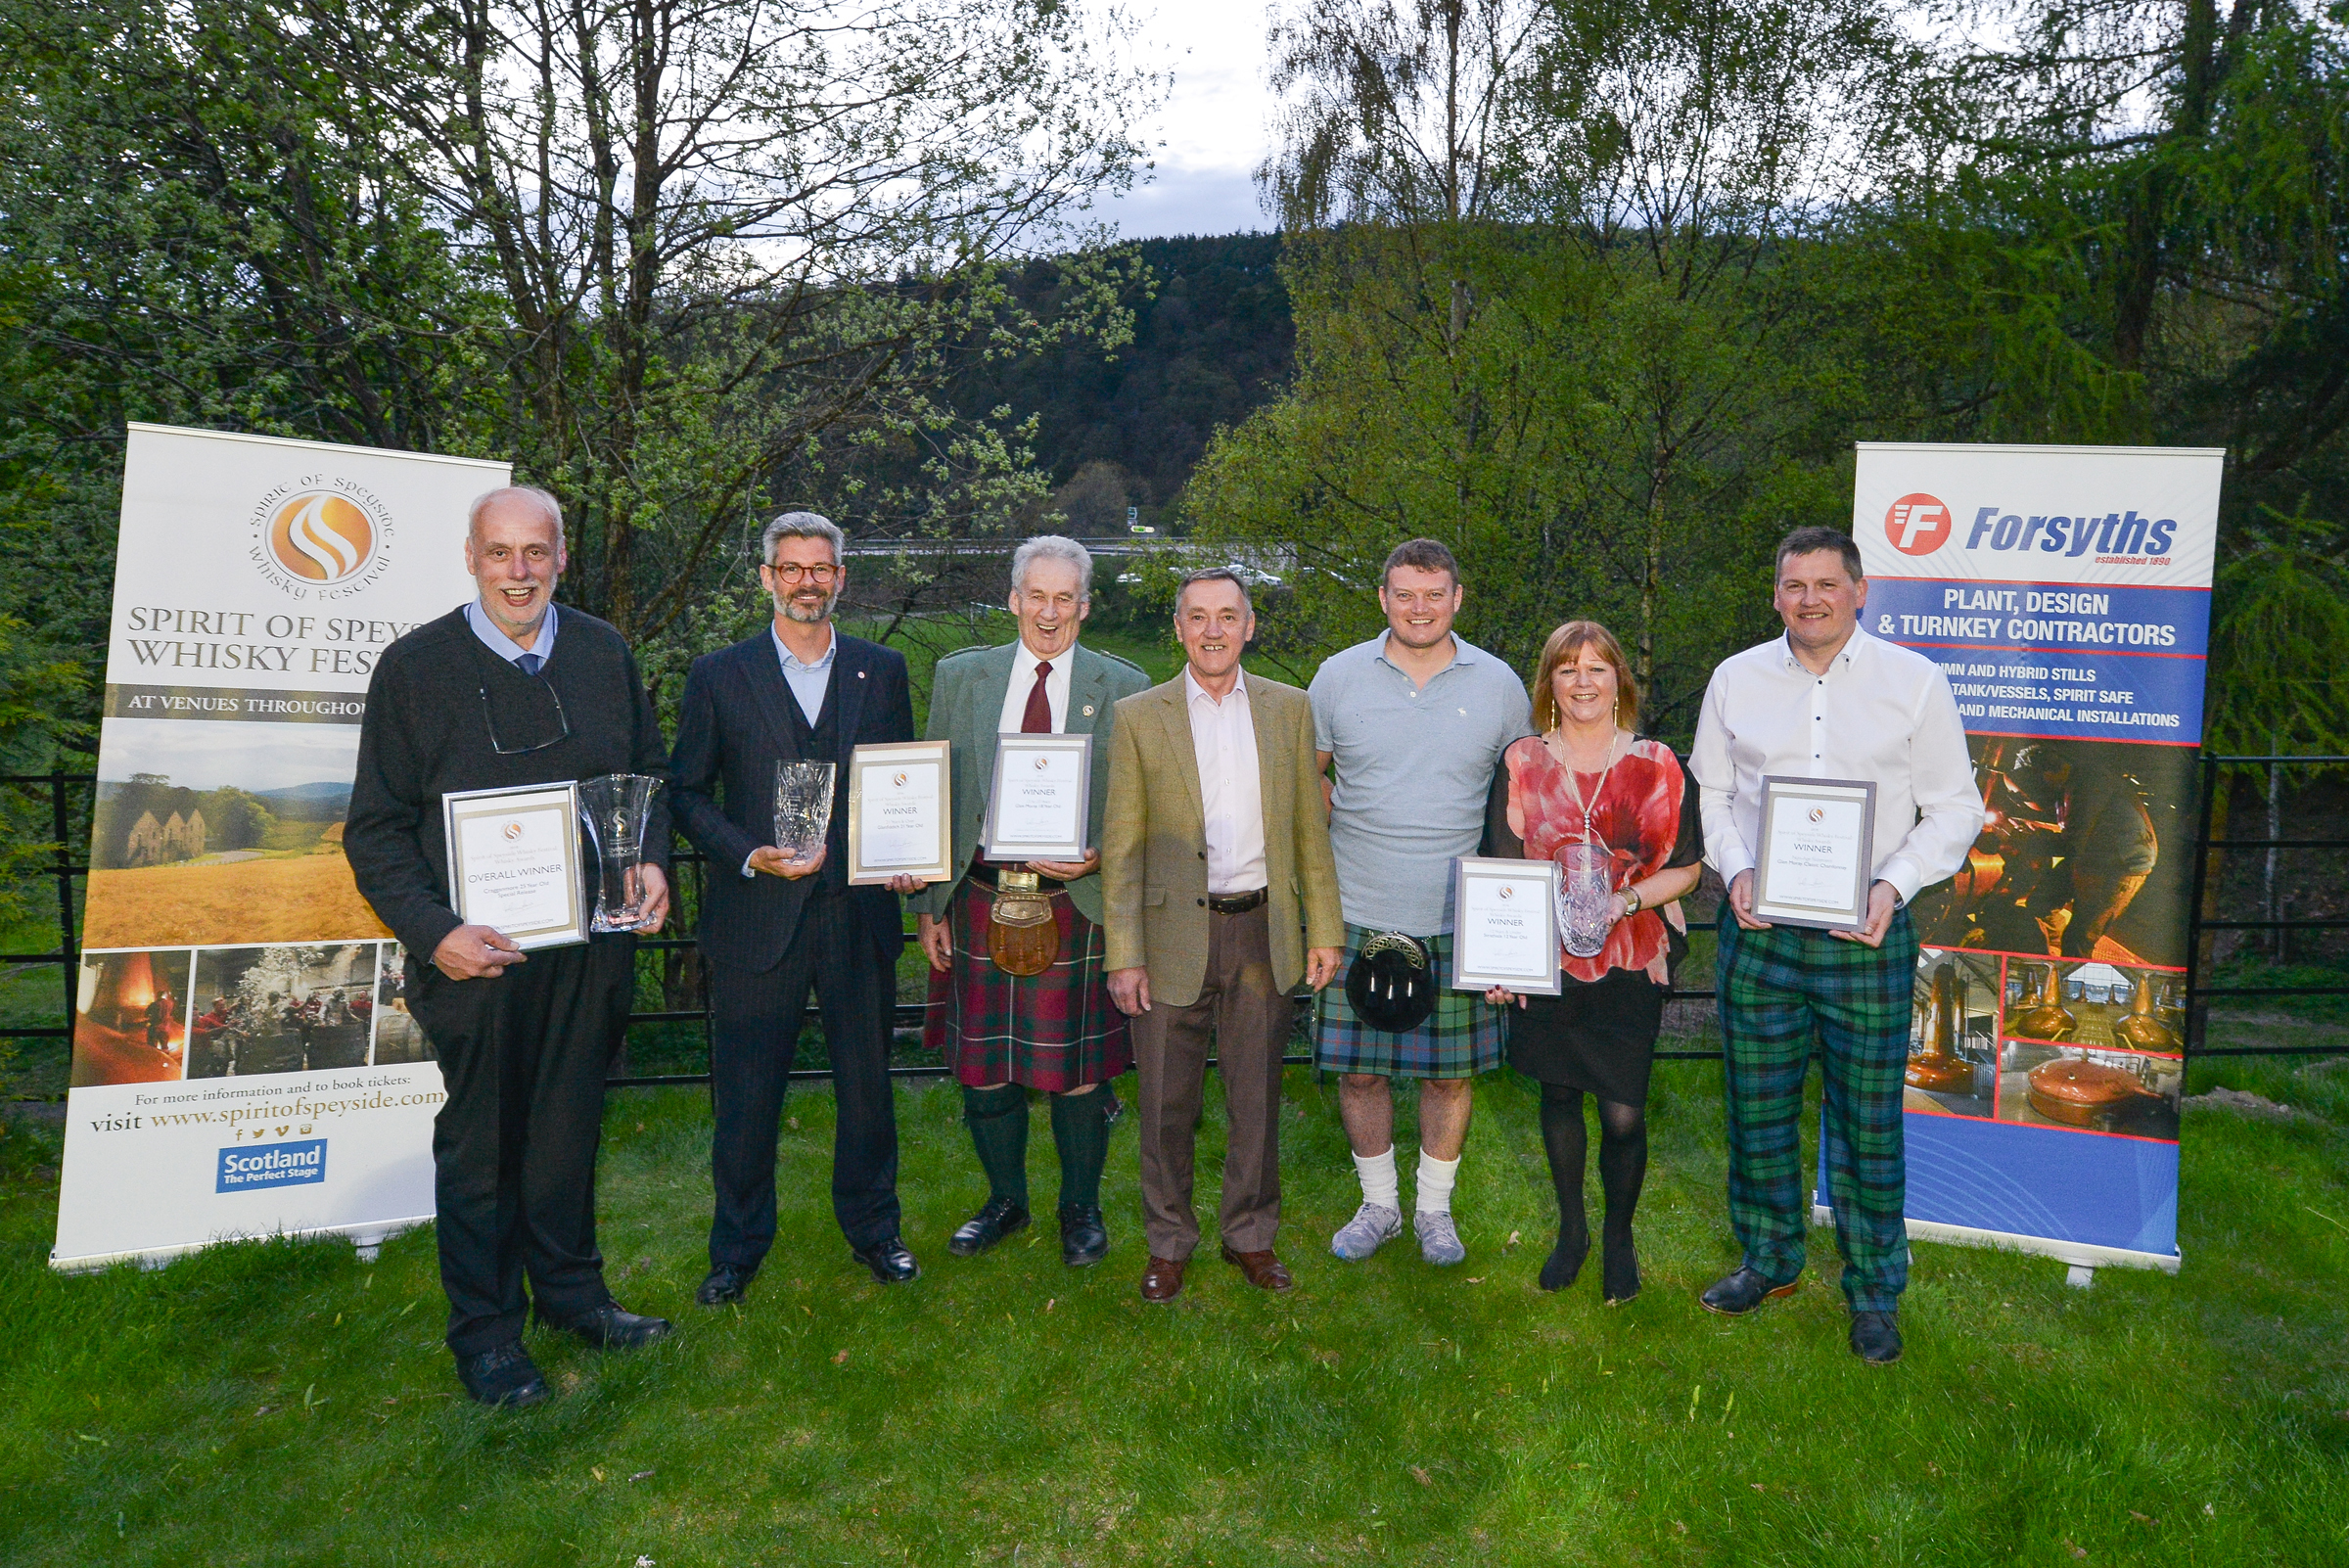 Spirit of Speyside Whisky Festival whisky award winners line up to receive awards. Pictured: Kevin Innes, Cragganmore; Mark Thompson, Glenfiddich; Ed Dodson, Glen Moray, James Campbell, chairman of Spirit of Speyside Whisky Festival, Richard Forsyth of award sponsors Forsyths, Caroline Mitchell, Strathisla and Graham Coull, Glen Moray.